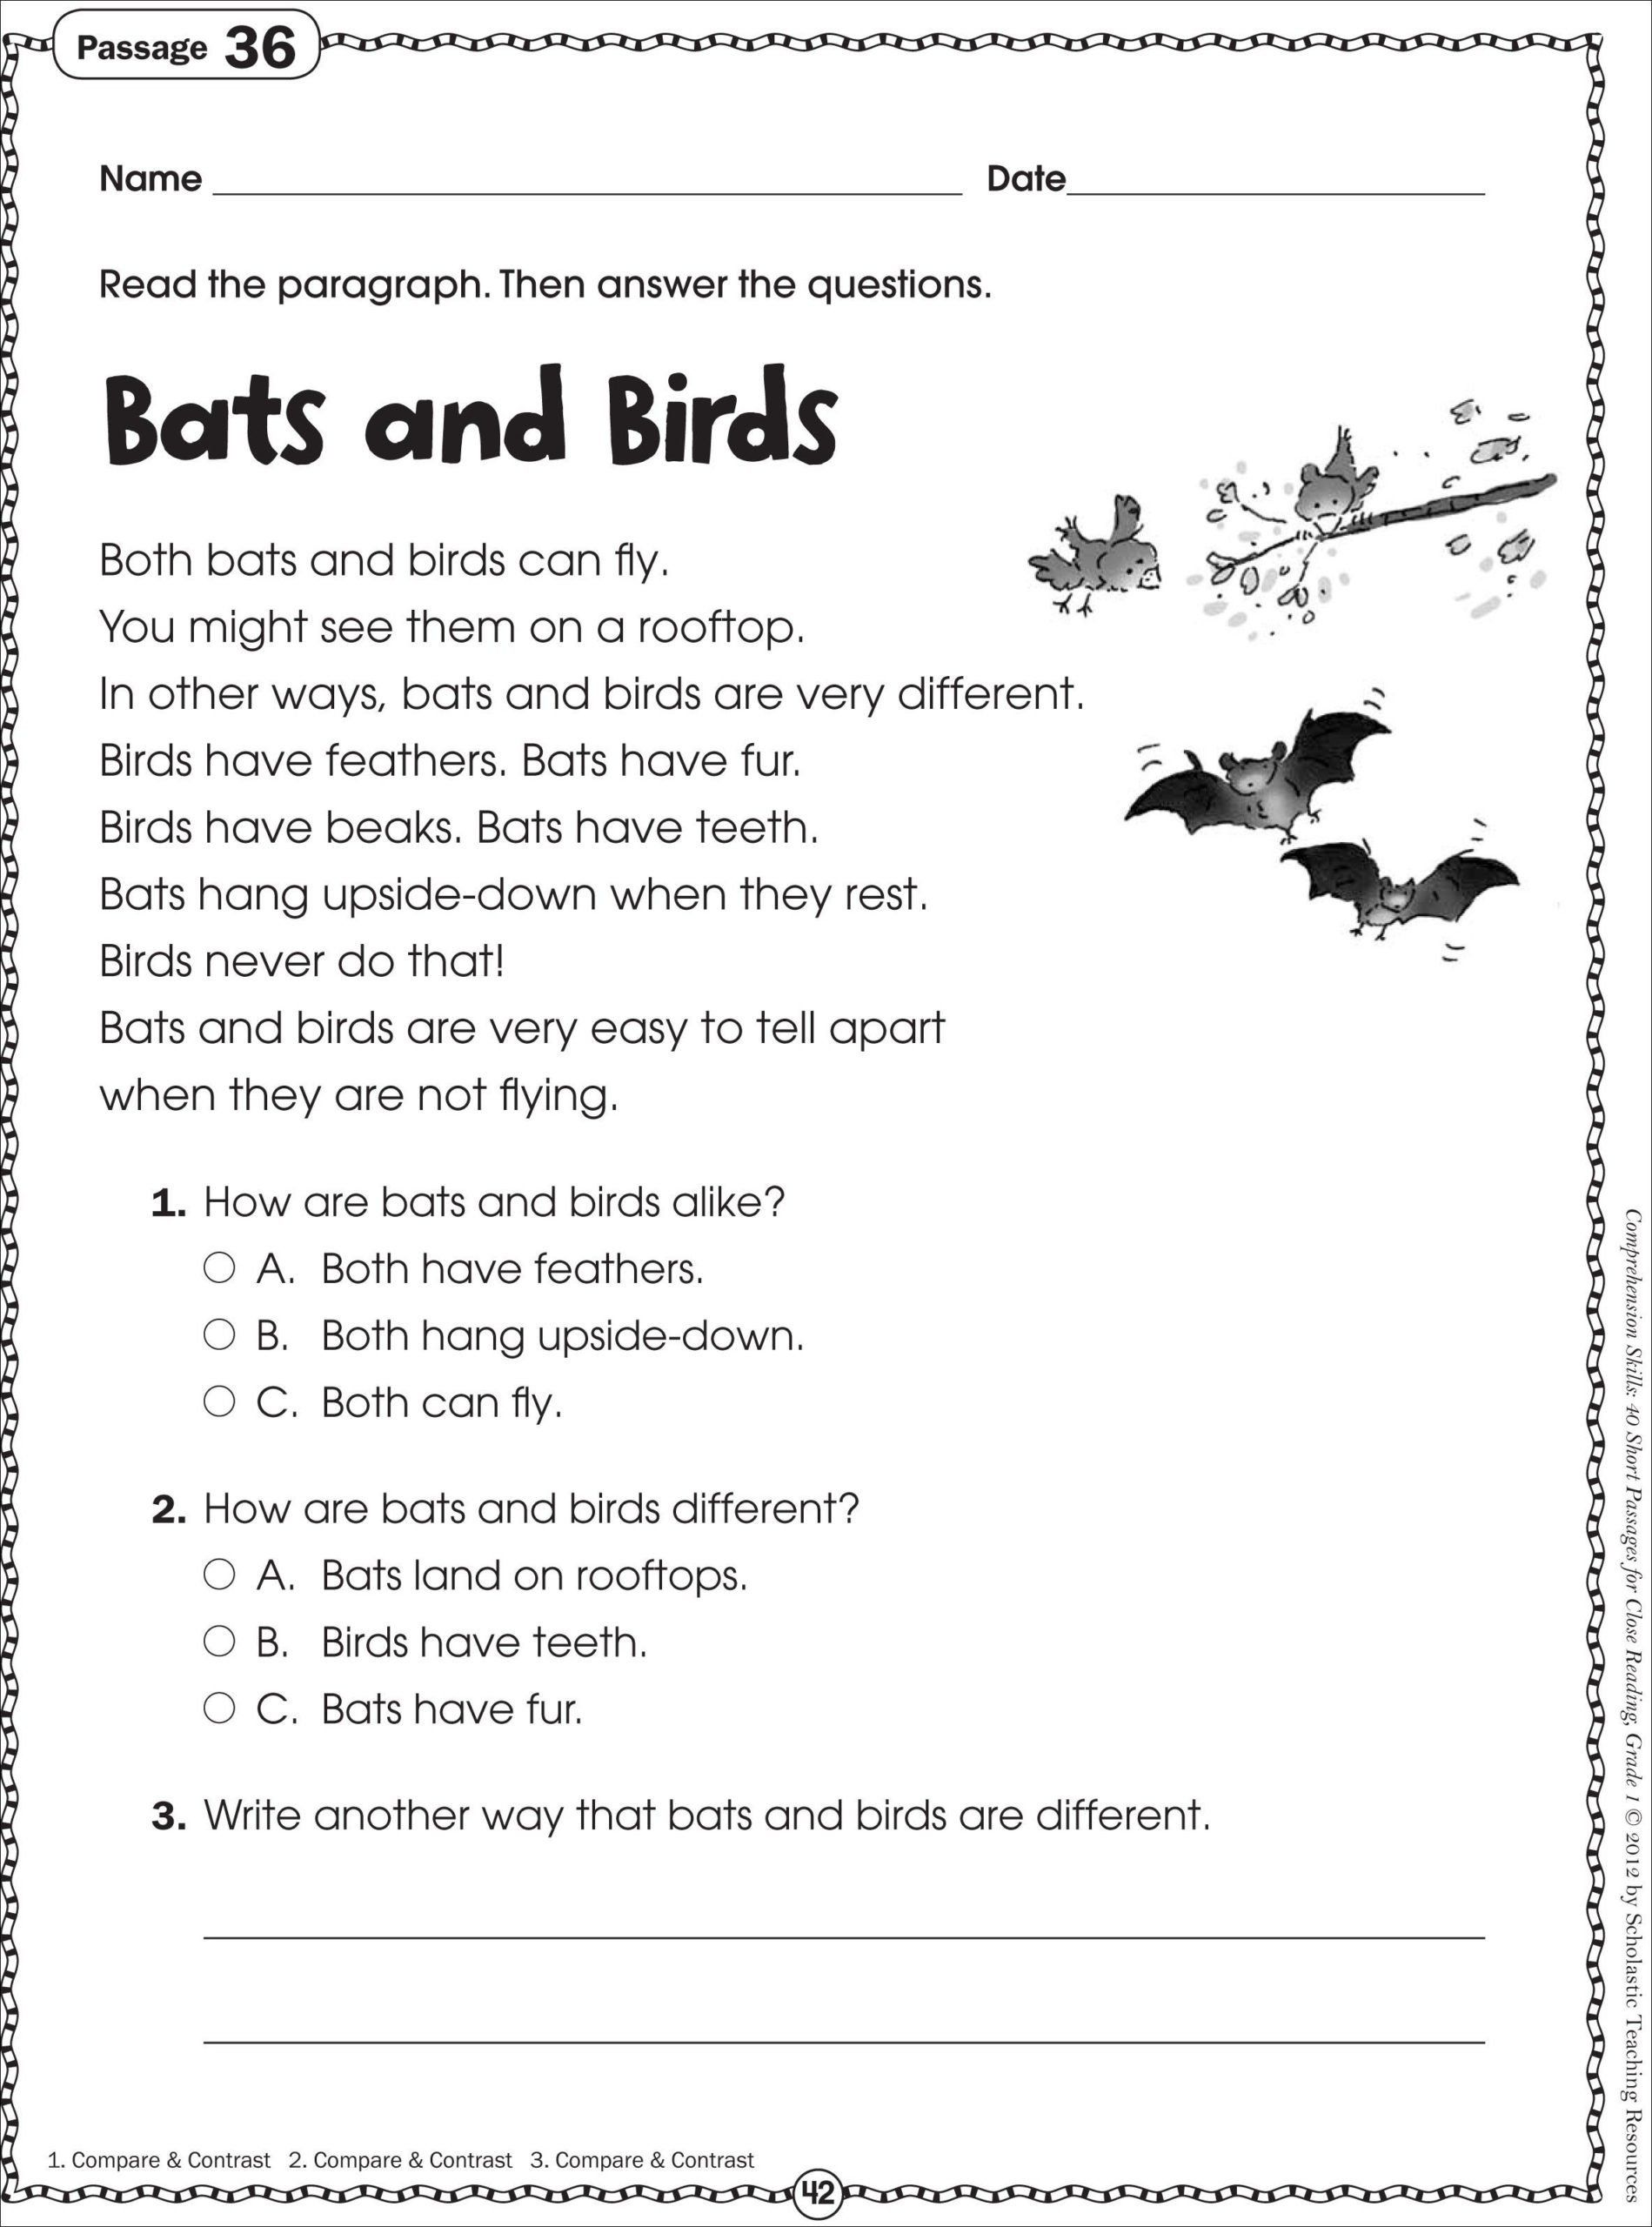 medium resolution of Halloween Reading Comprehension Worksheets for 4th Grade Free Printable  Reading Pre… in 2020   Comprehension worksheets